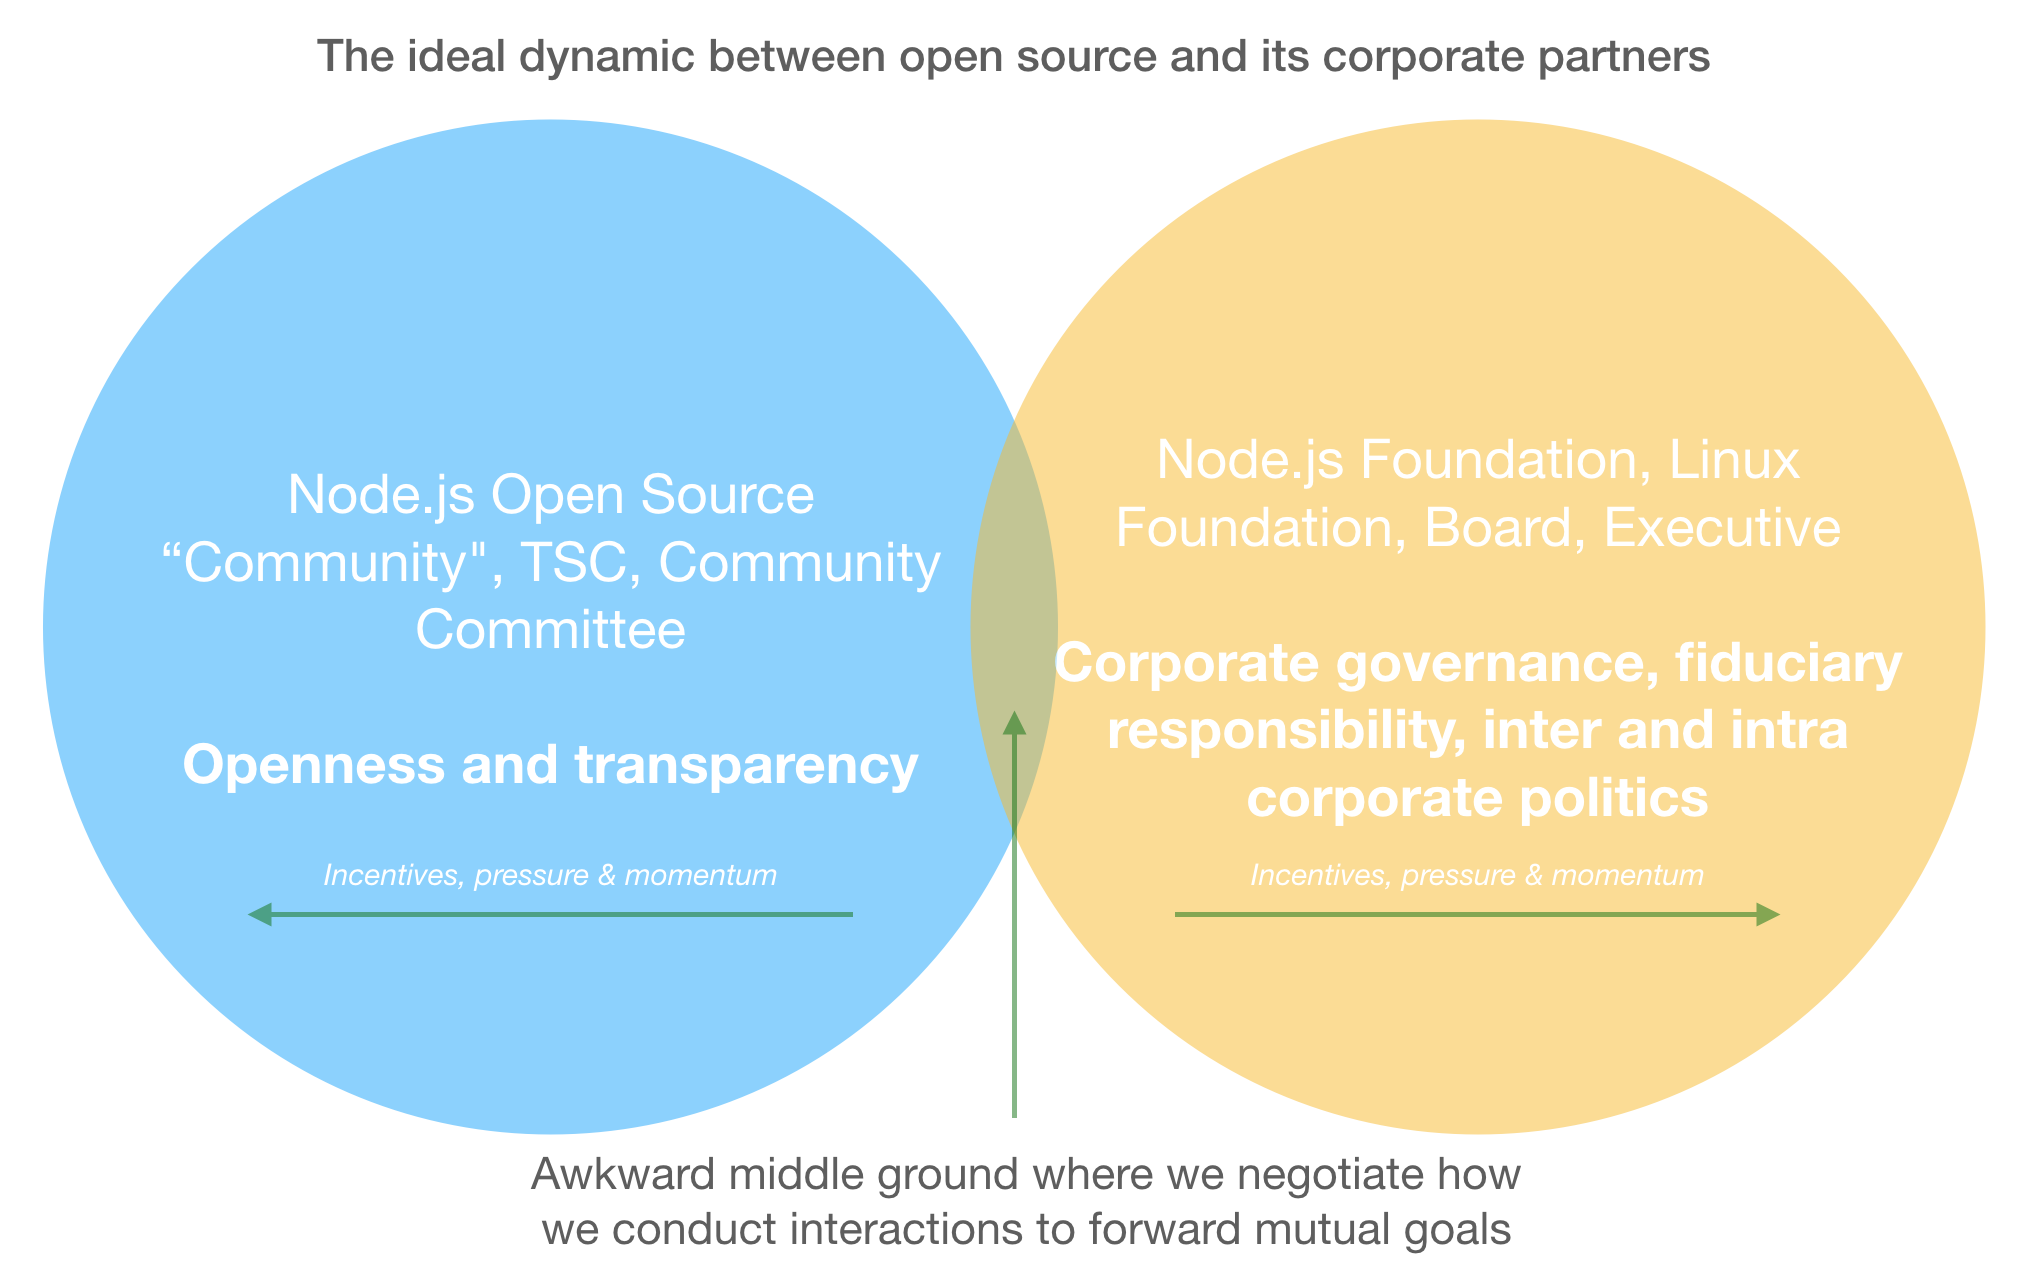 The ideal dynamic between open source and its corporate partners